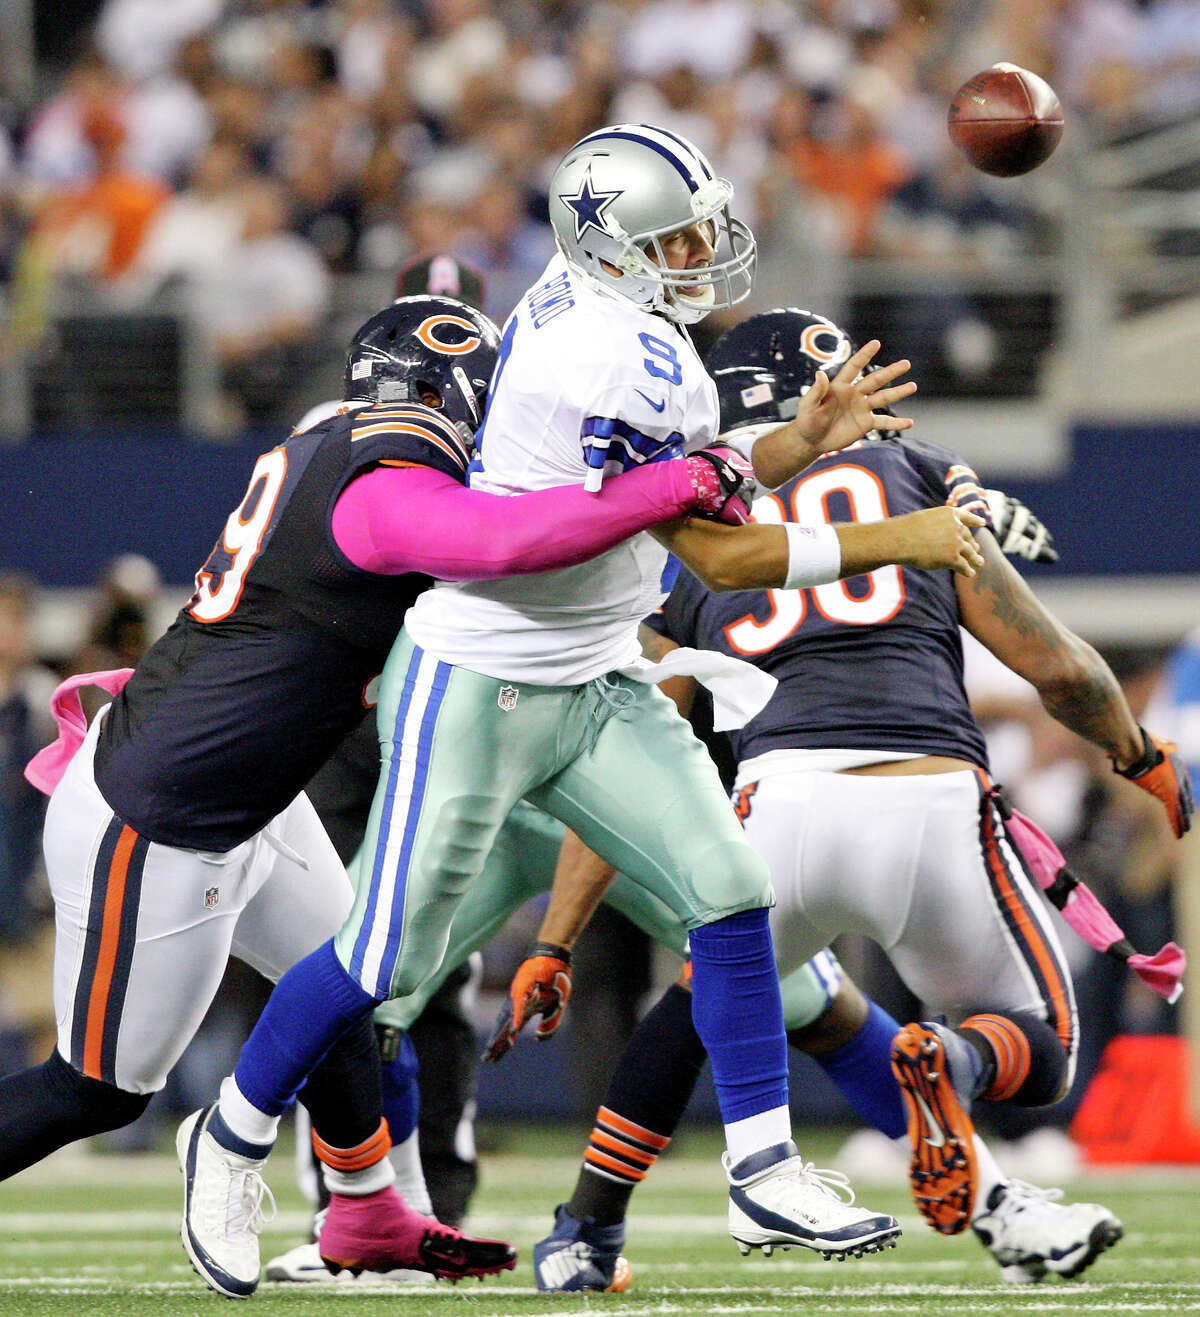 Oct. 1: Dallas Cowboys' Tony Romo is pressured by Chicago Bears' Henry Melton and loses control of the ball during second half action at Cowboys Stadium. Chicago Bears' Lance Briggs ran the ball in for a touchdown on the play. The Bears won 34-18.